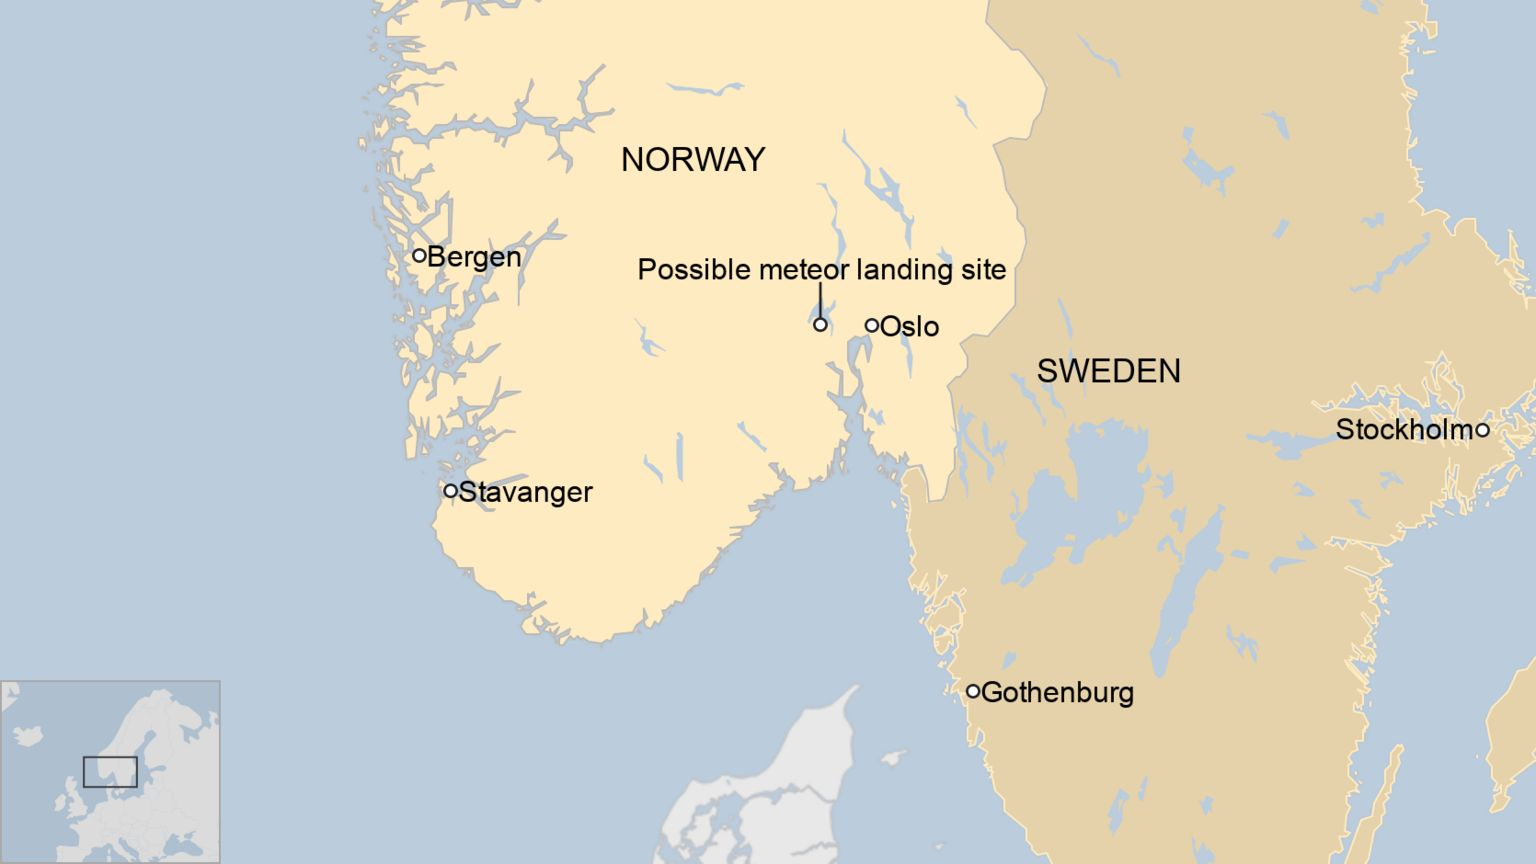 A BBC map showing the possible landing site of the meteor